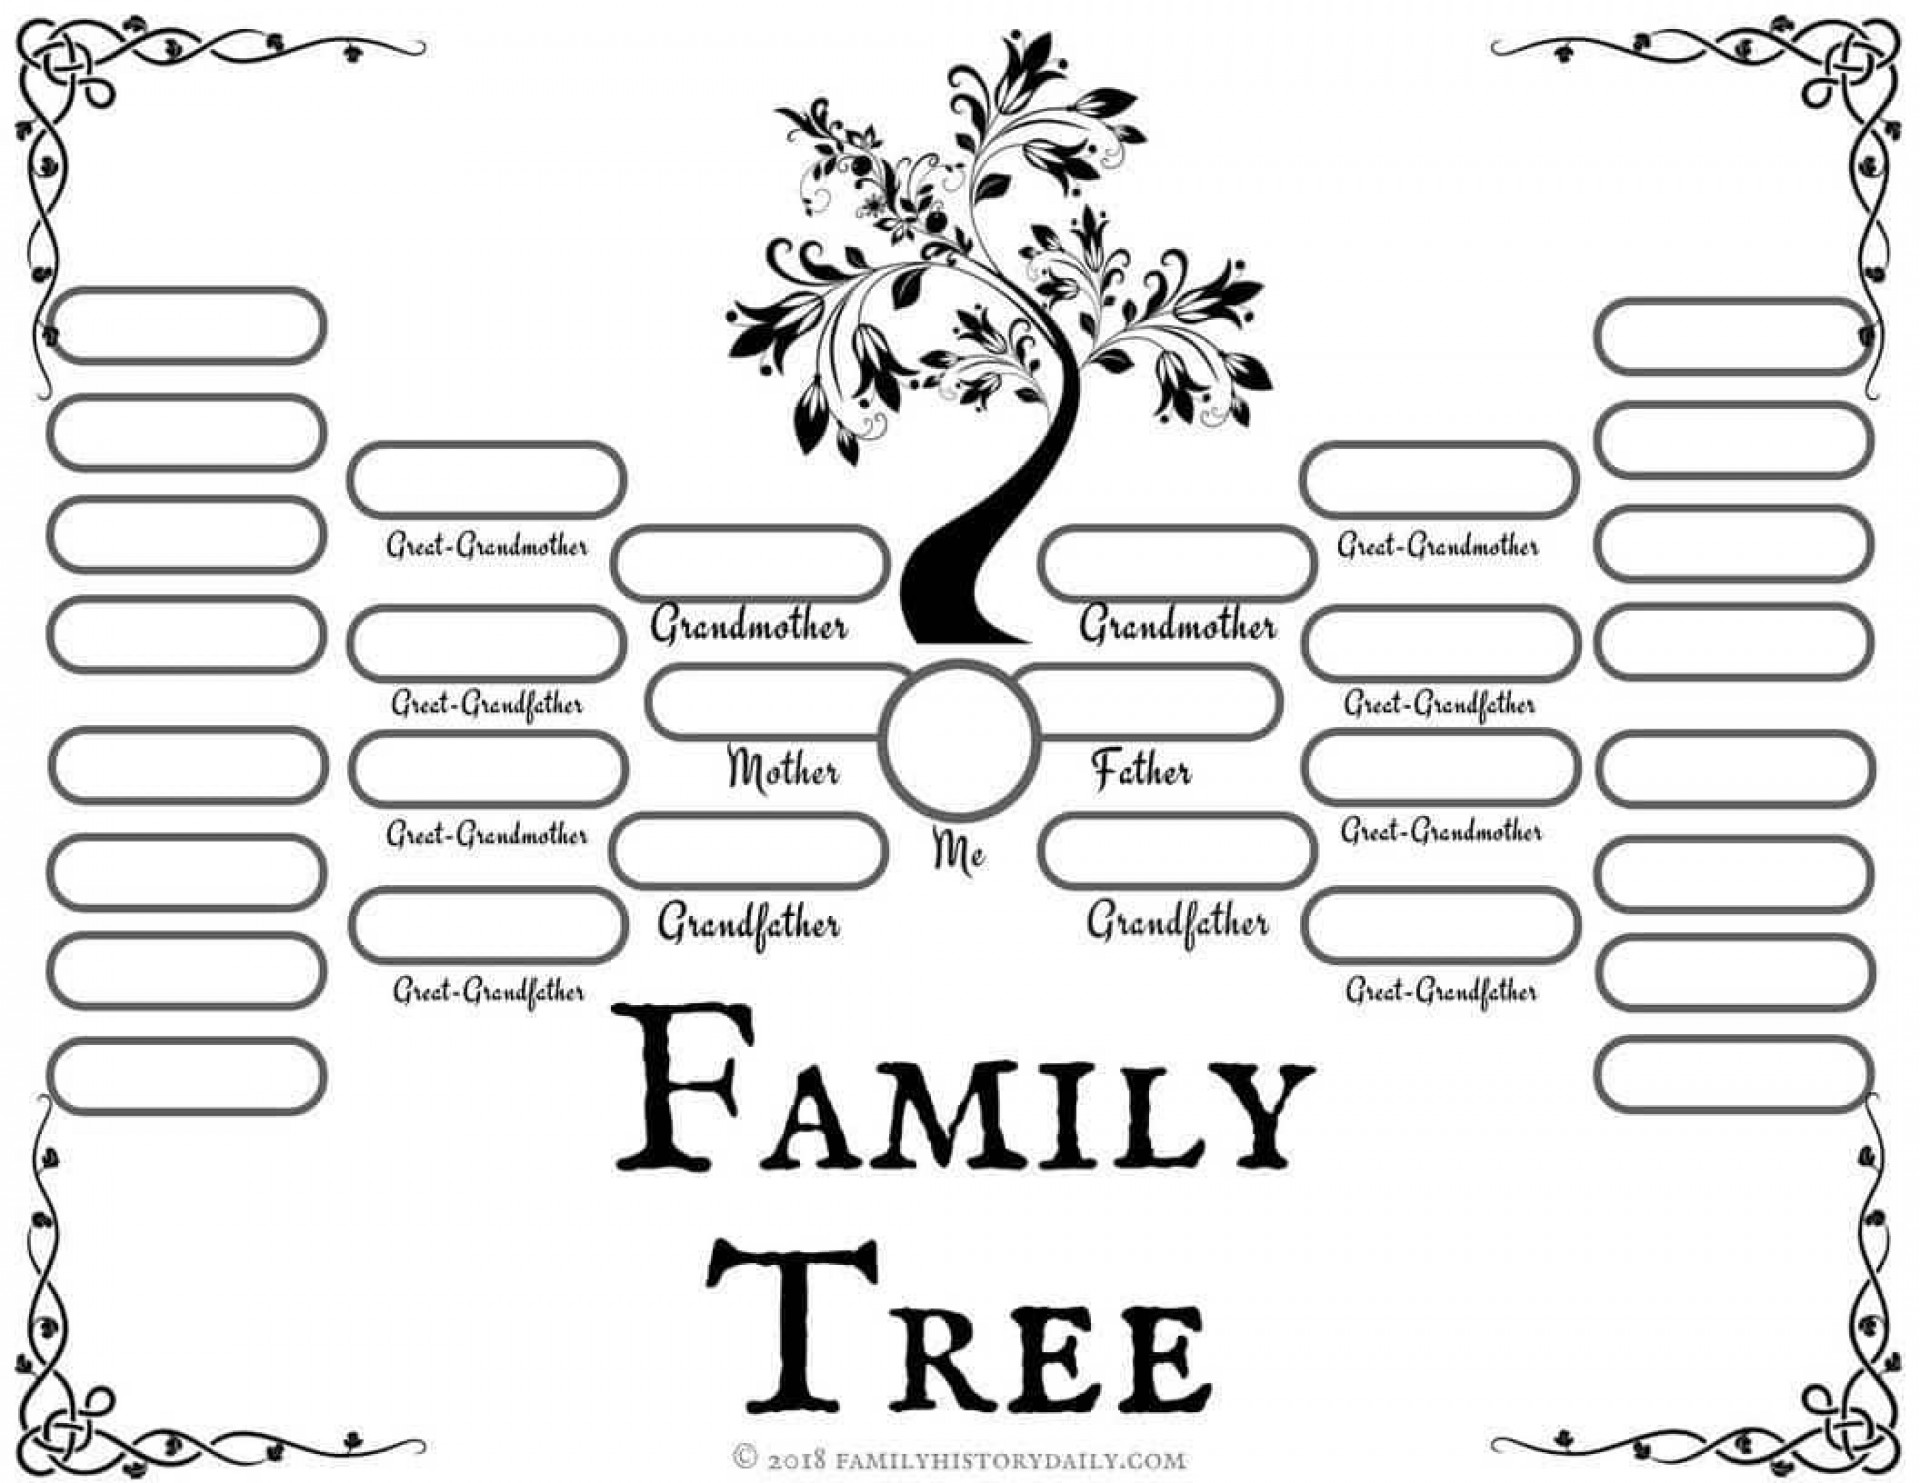 010 Rare Family Tree Template Word Design  Free 2010 Doc Download1920